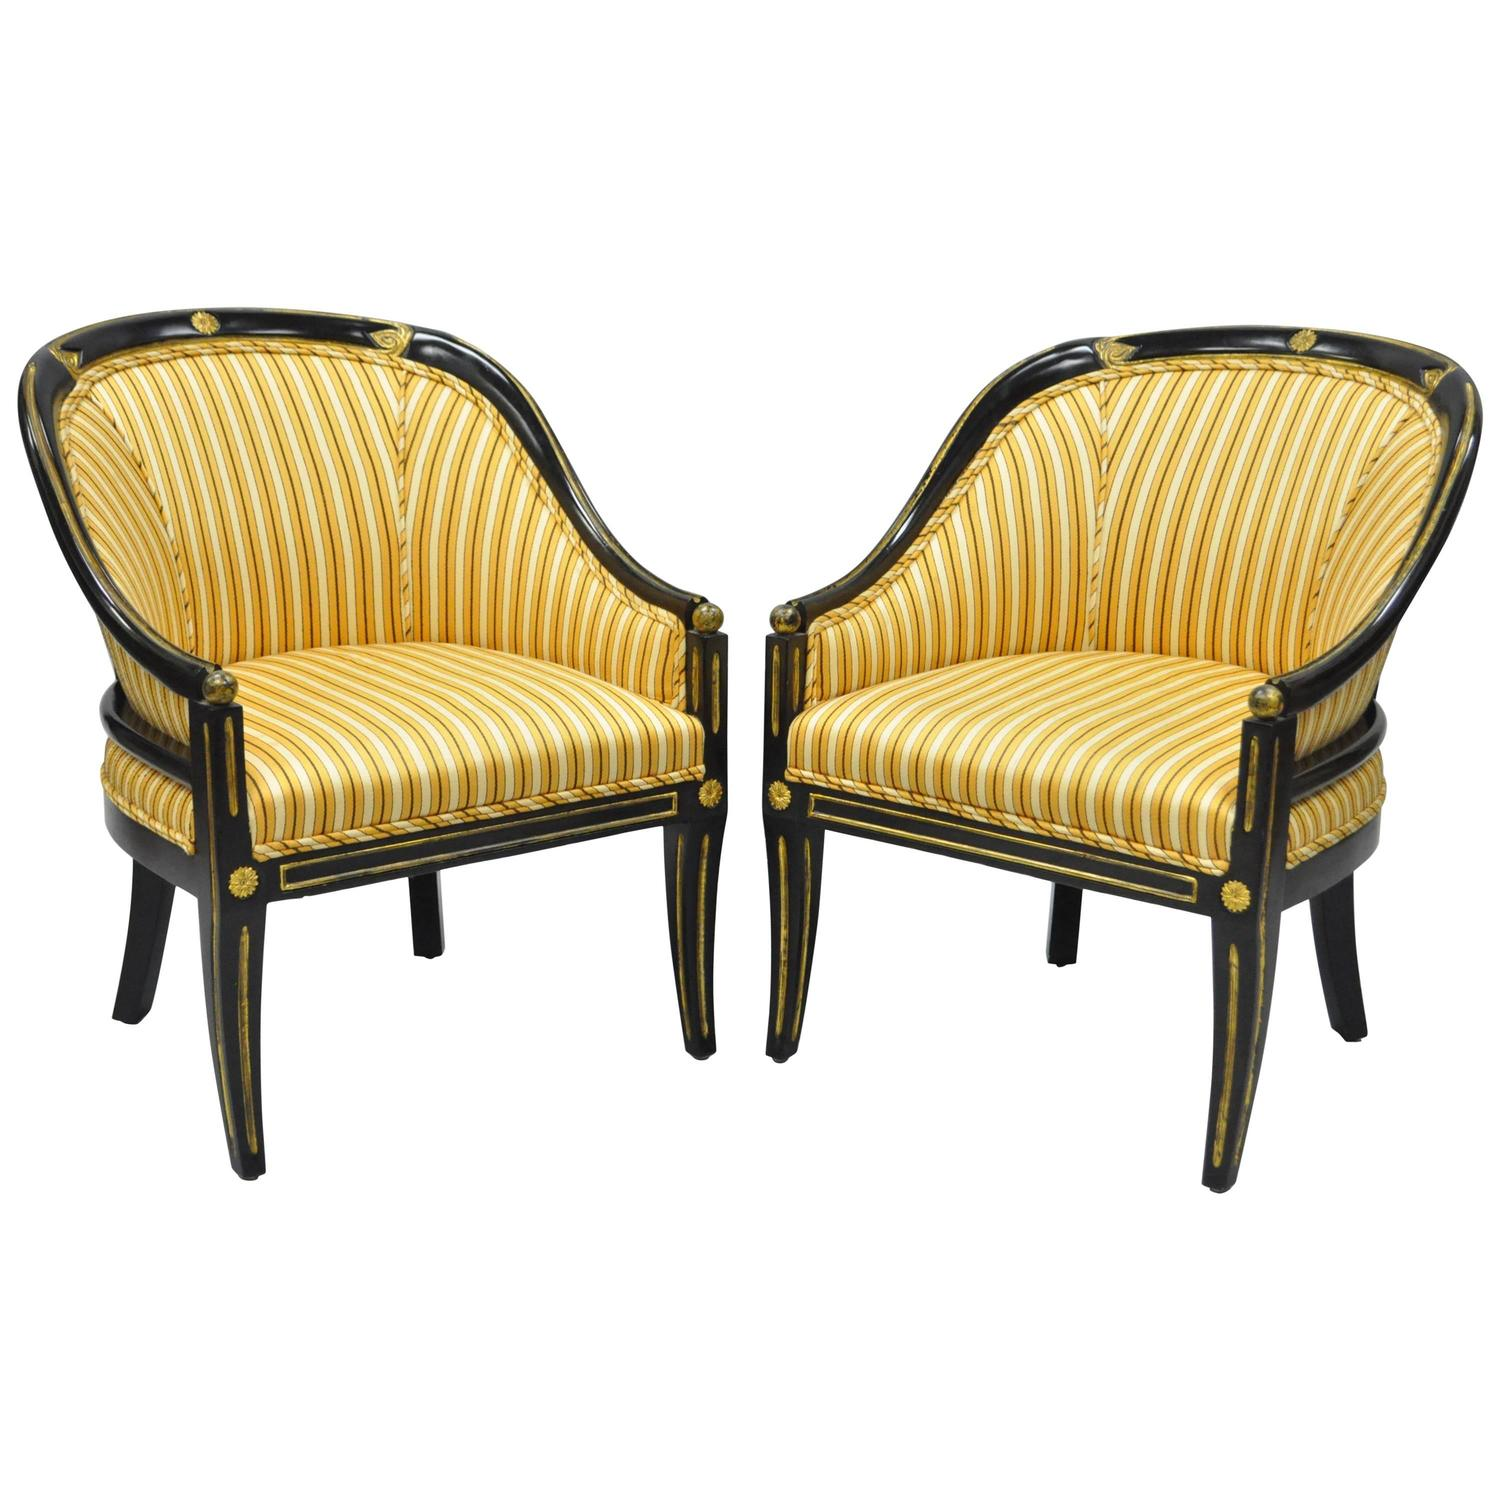 Pair of Antique Ebonized Slipper Chairs with Velvet Leopard Print